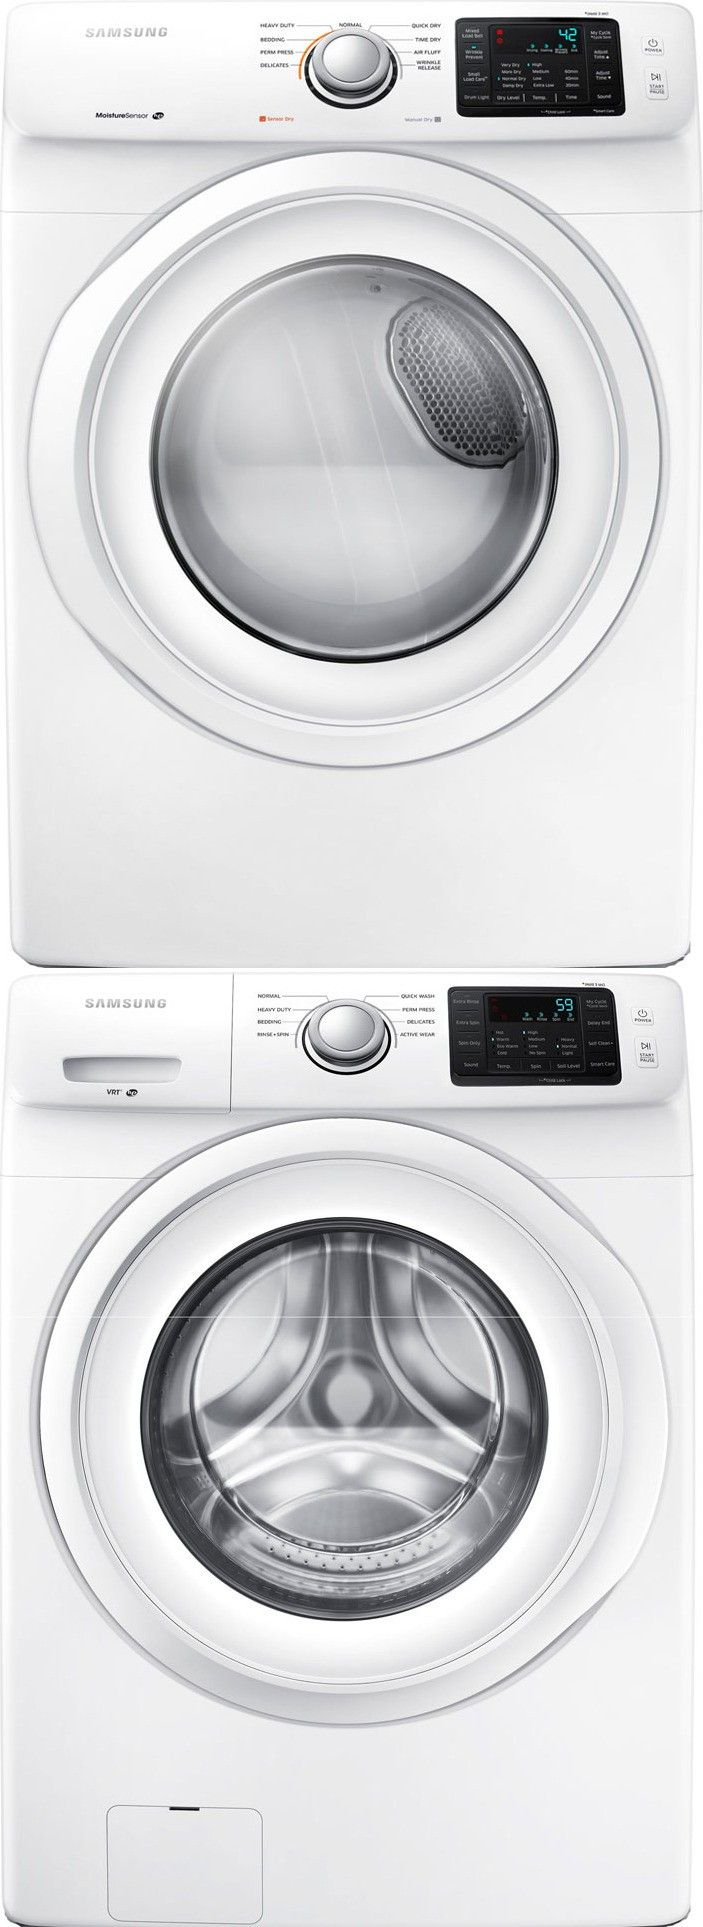 Samsung wfhaw front load washer u dvhew electric dryer w